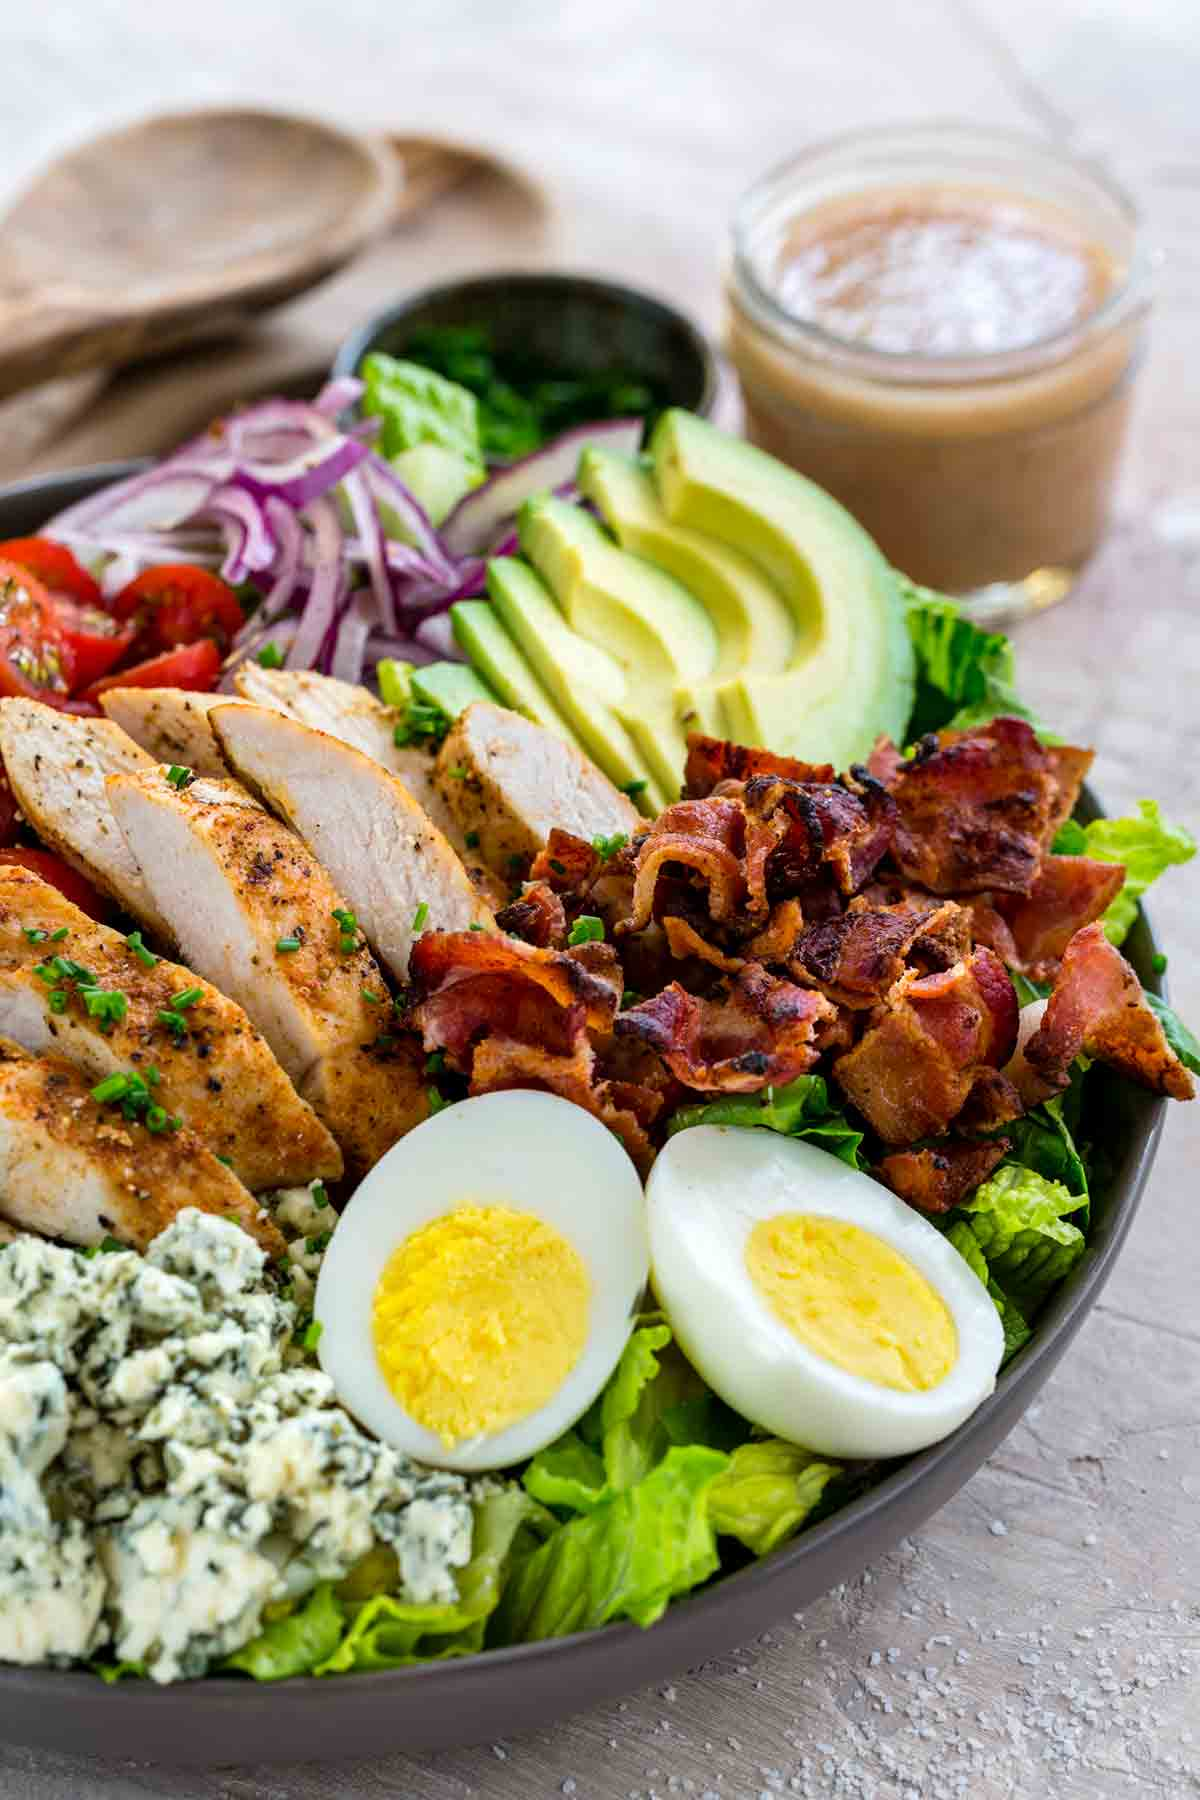 A beautiful cobb salad on a table next to a jar of homemade dressing